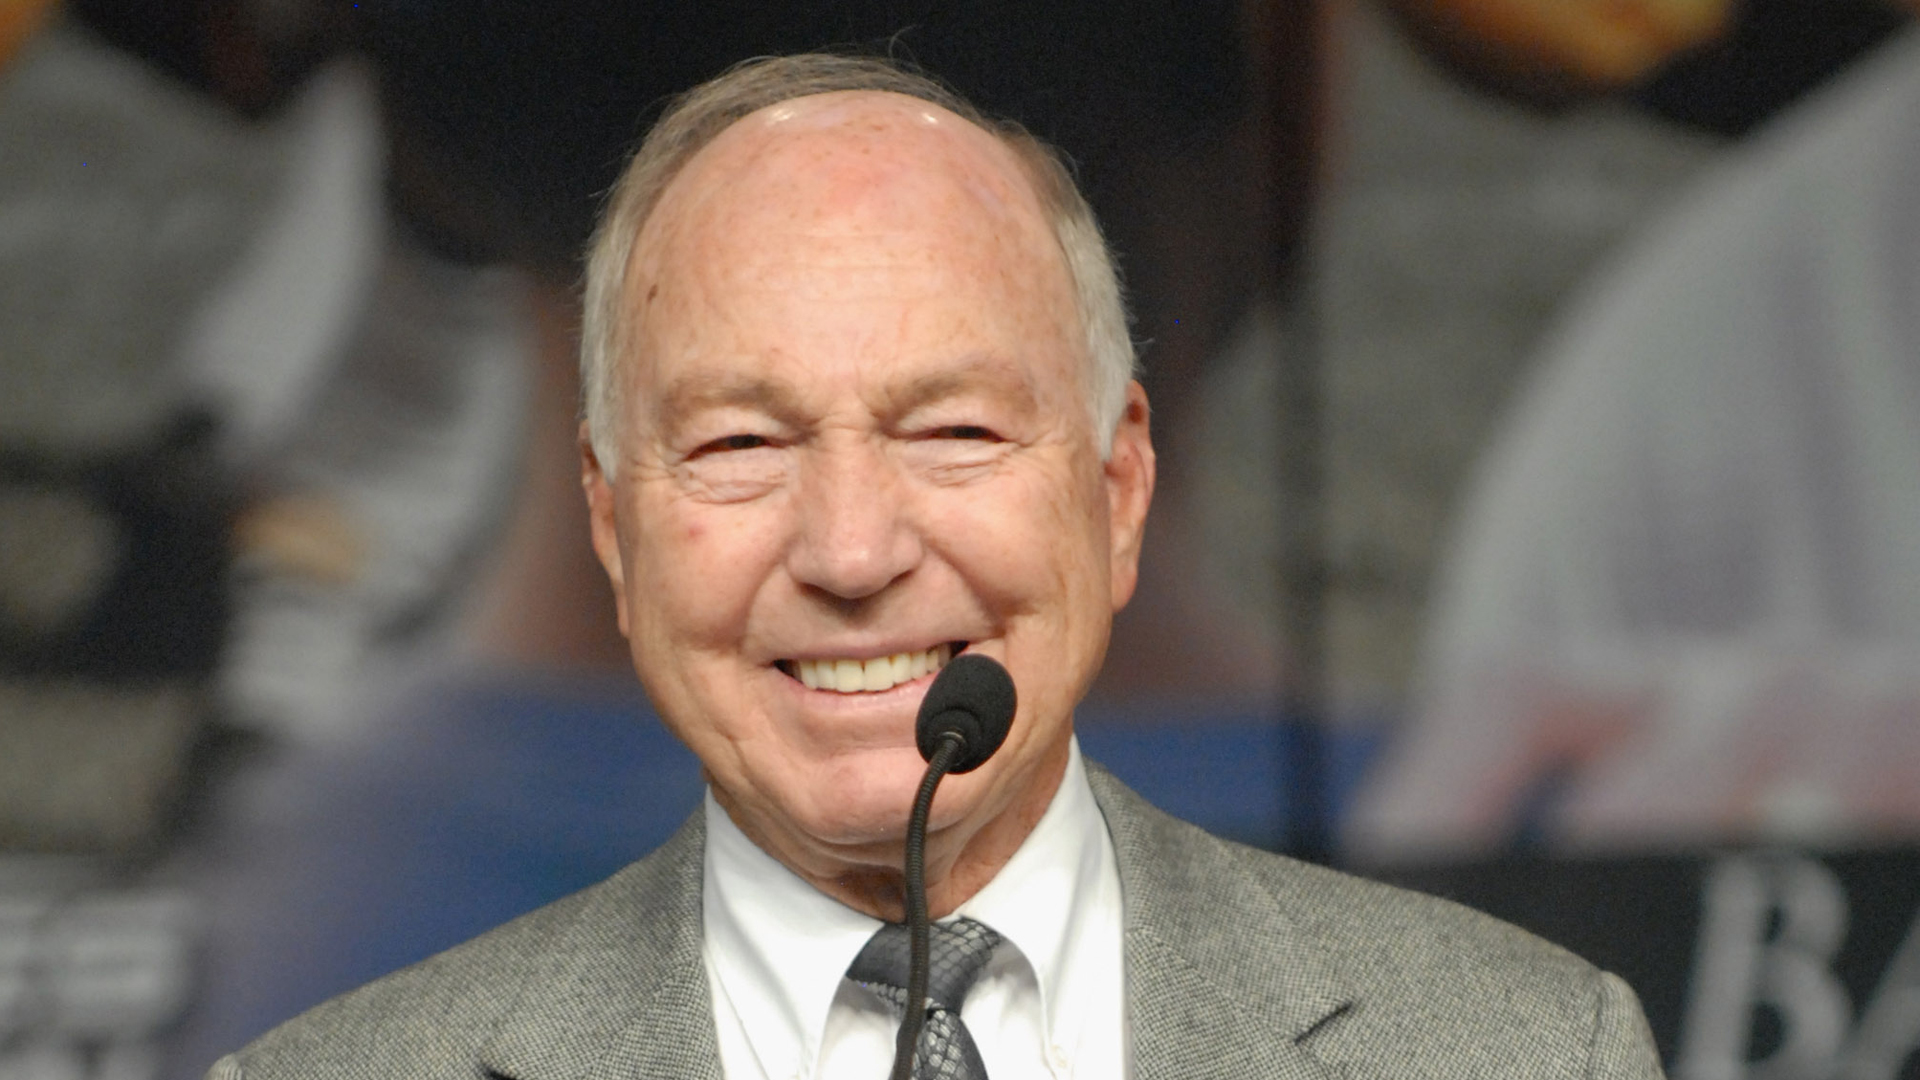 Bart Starr attends the 25th Annual Super Bowl Breakfast at Exposition Hall at the Indiana State Fairgrounds on Feb. 4, 2012 in Indianapolis, Indiana. (Credit: Stephen Cohen/Getty Images)